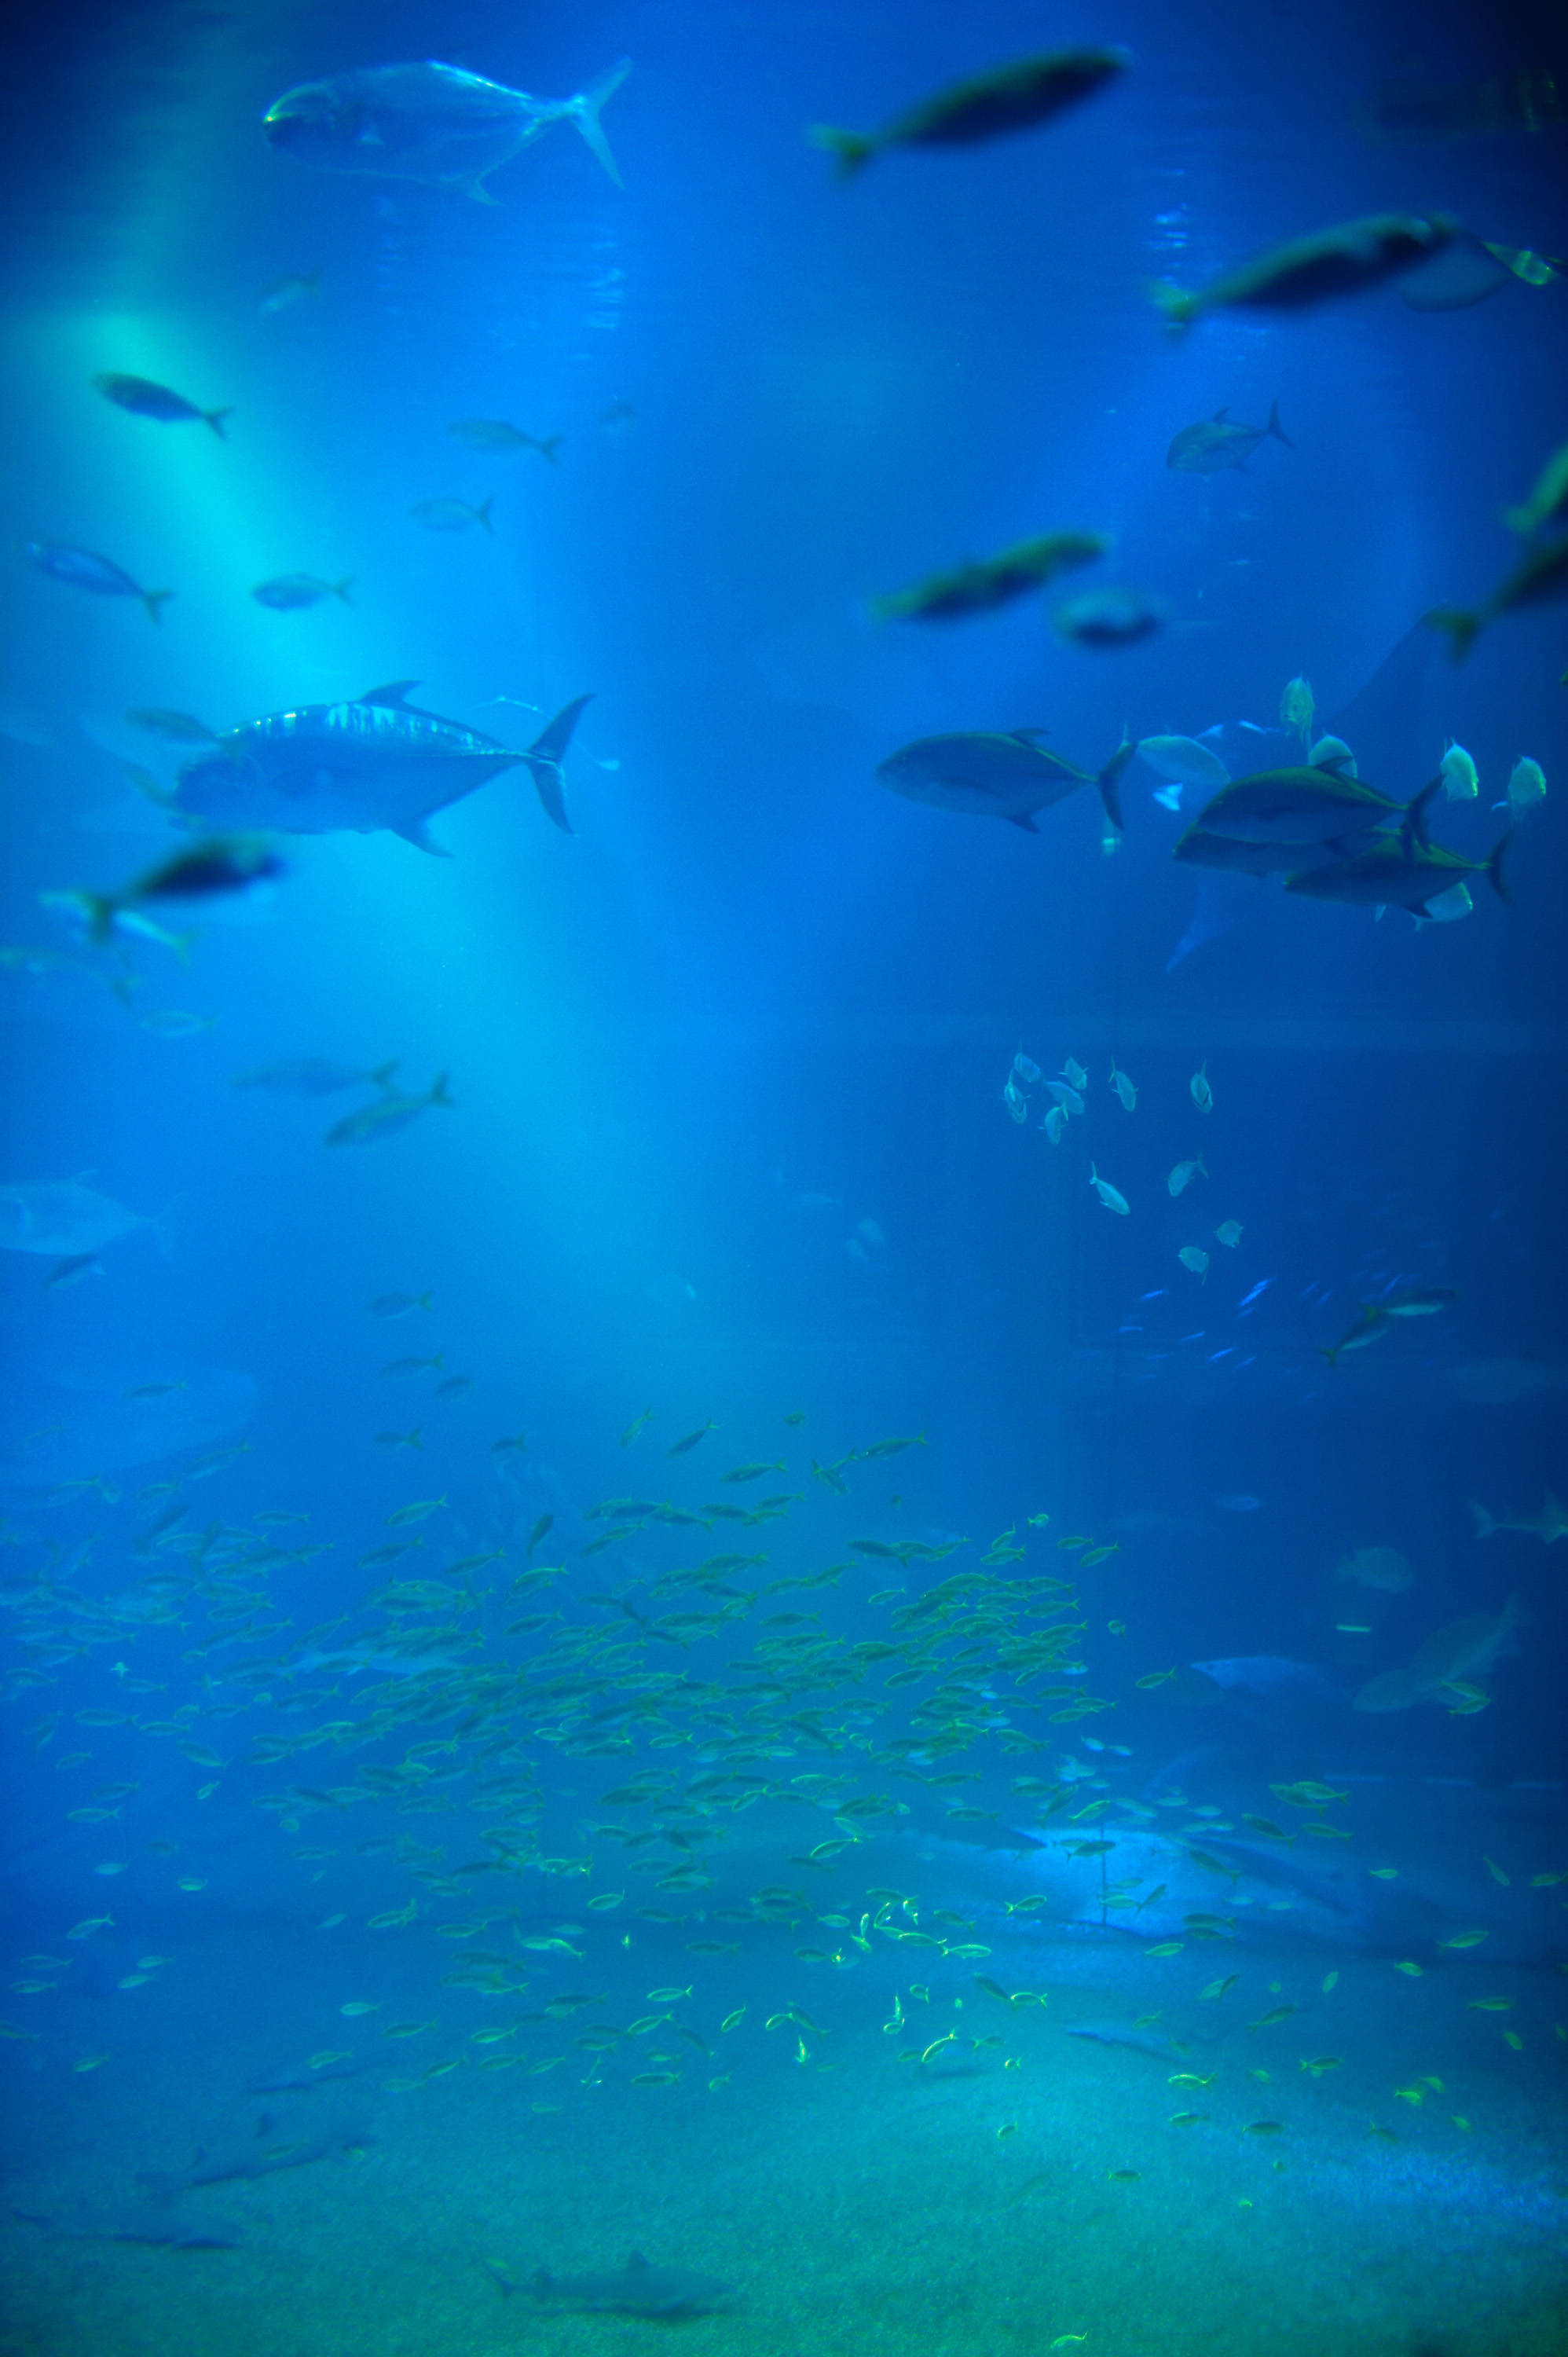 Fish in tank swimming - Background Of A Large Marine Aquarium Tank With Shoals Of Fish Swimming Through The Blue Water